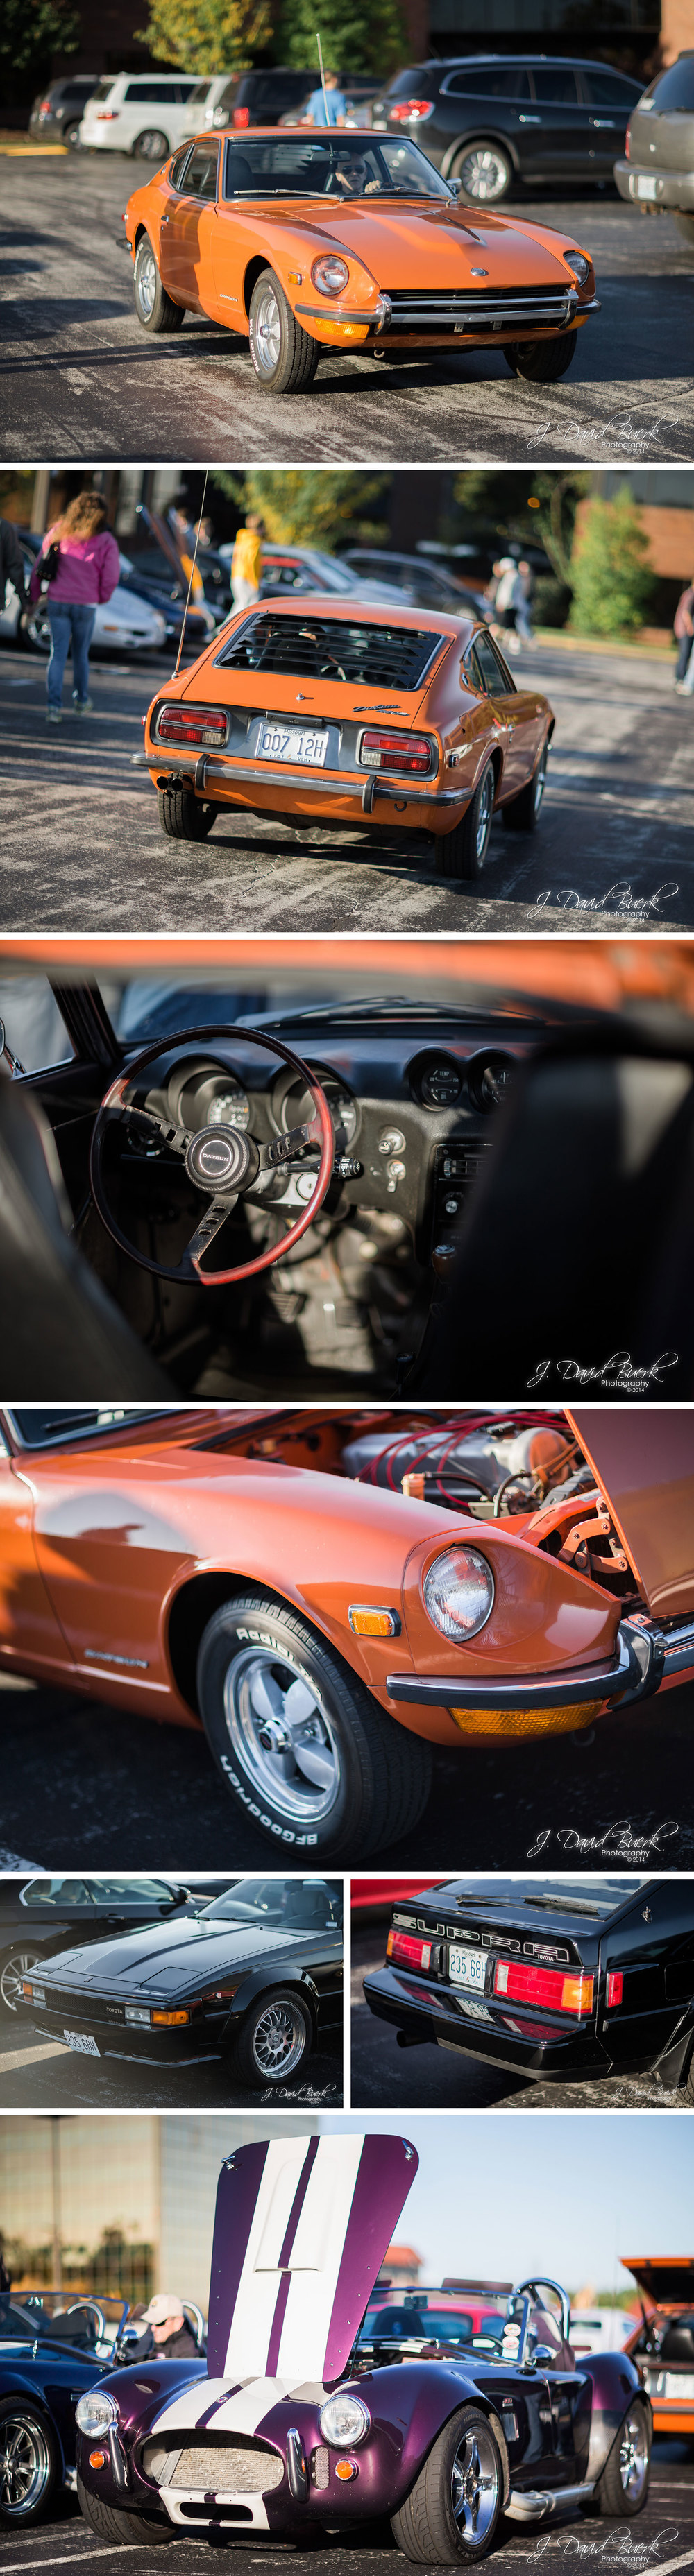 St. Louis Cars and Coffee: October 18th, 2014 — J. David Buerk ...